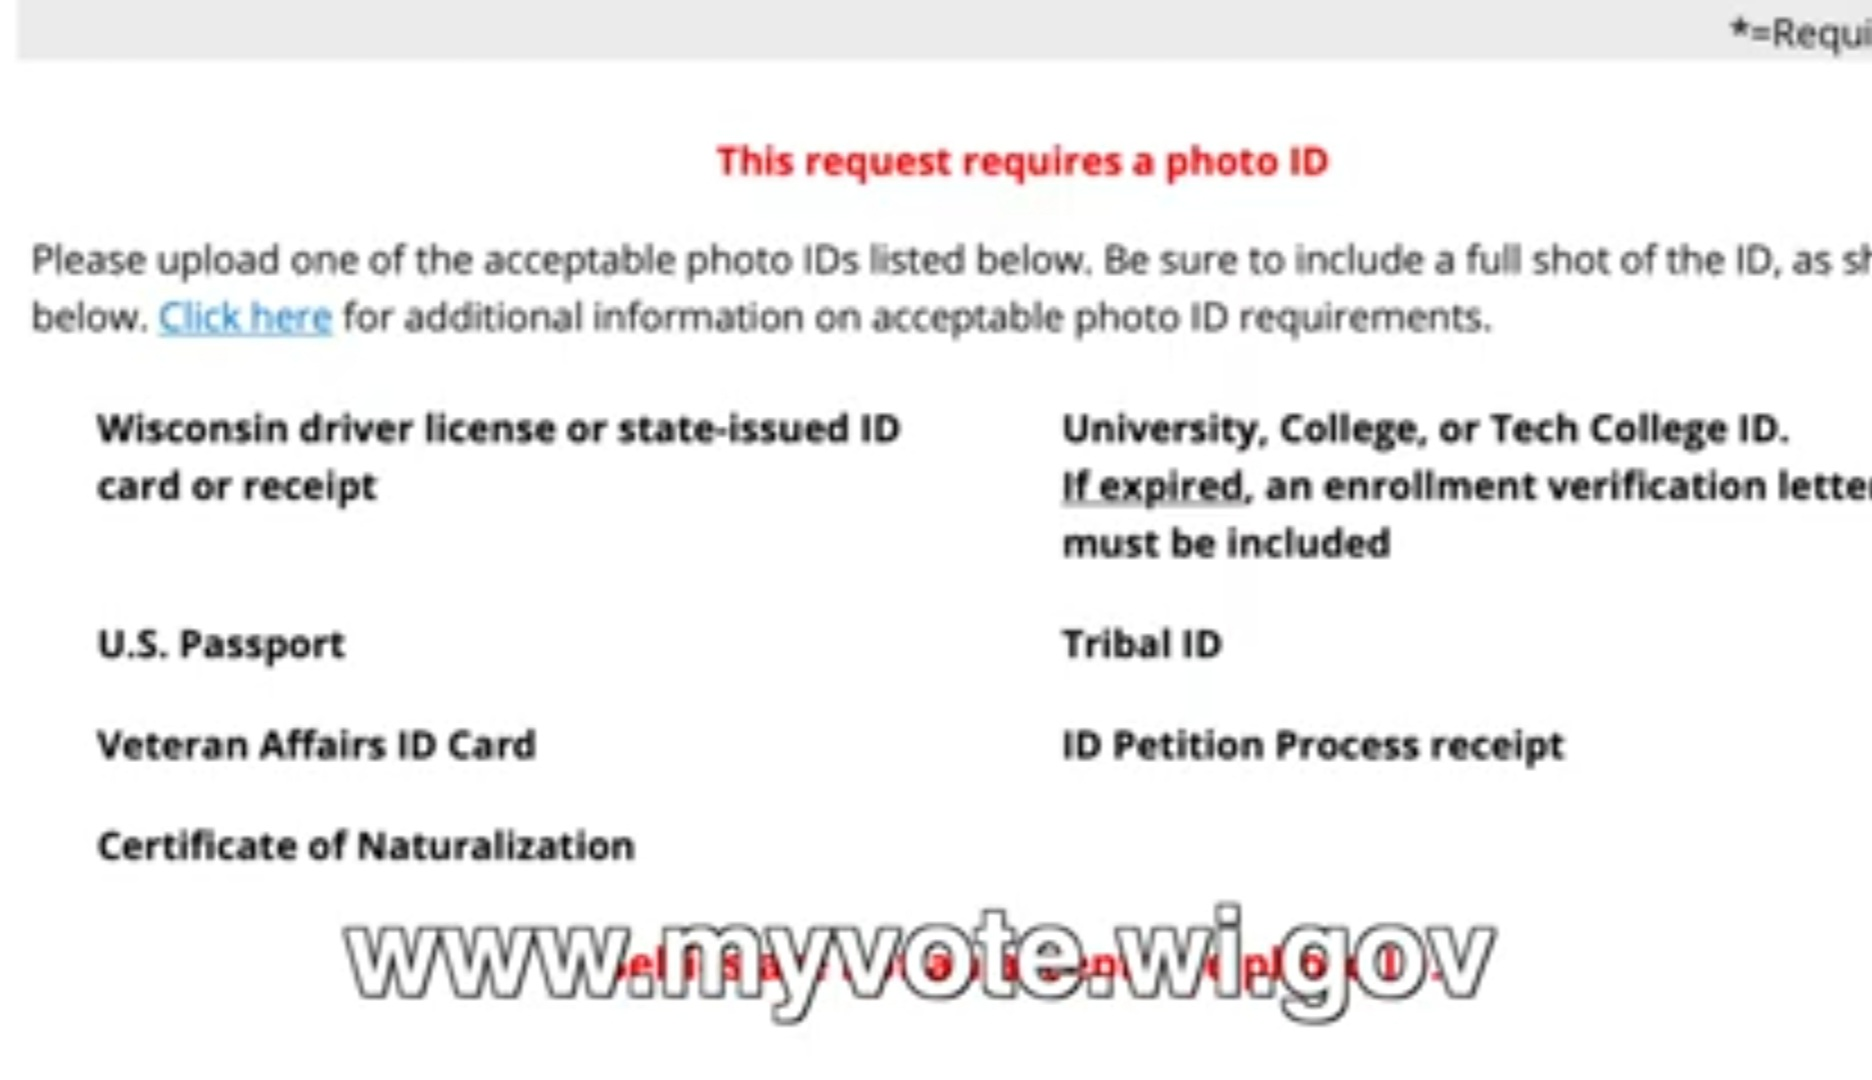 Screenshot_of_acceptable_IDs_for_Registering_for_Absentee_Ballot_-_Youtube_Chad_Vader_video.jpg